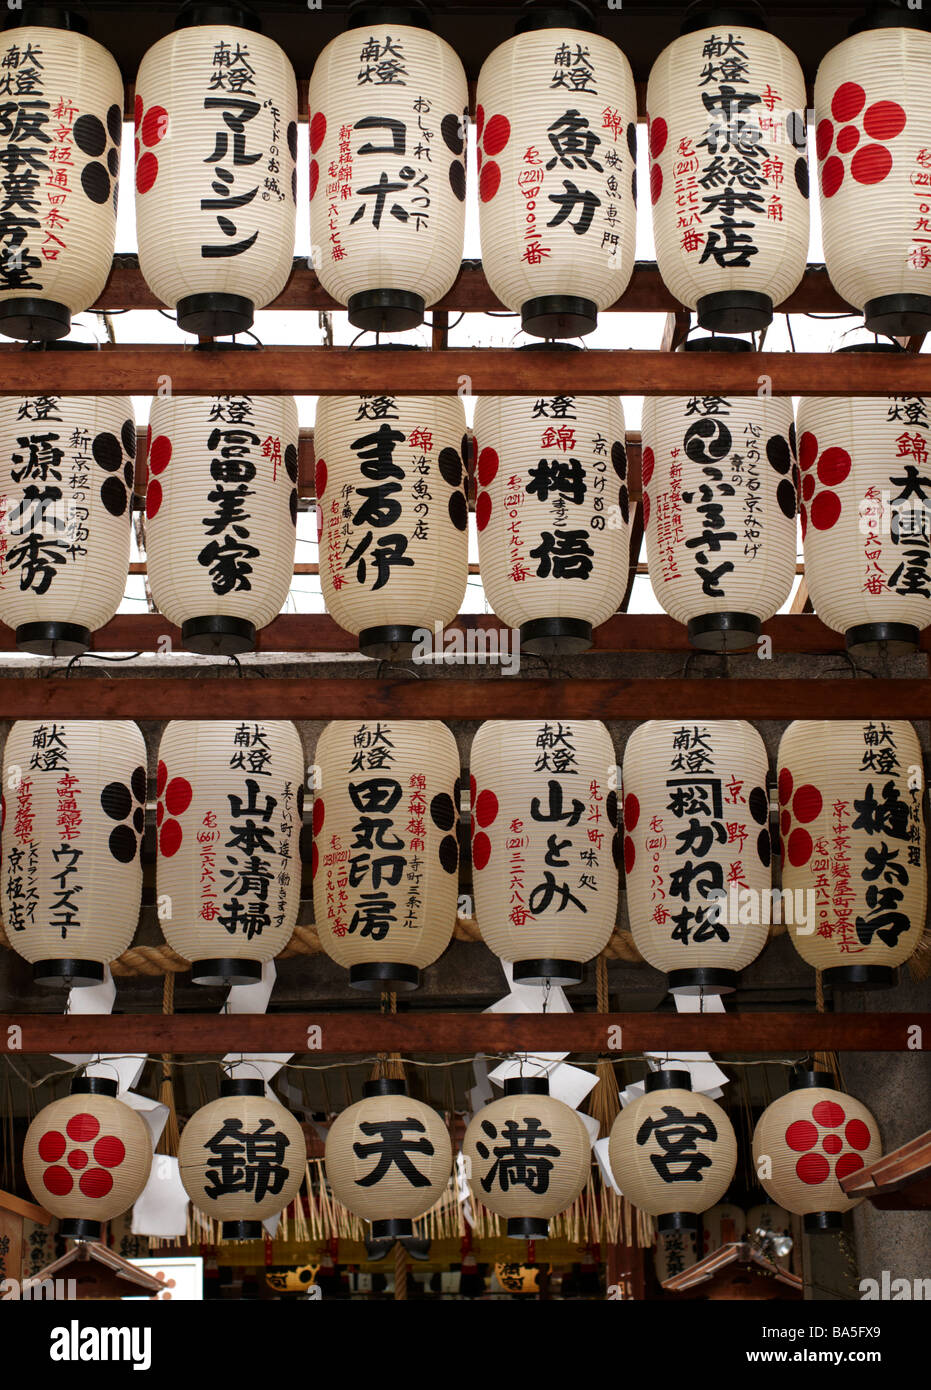 Colourful prayer lanterns and Japanese script in Kyoto, Japan Stock Photo